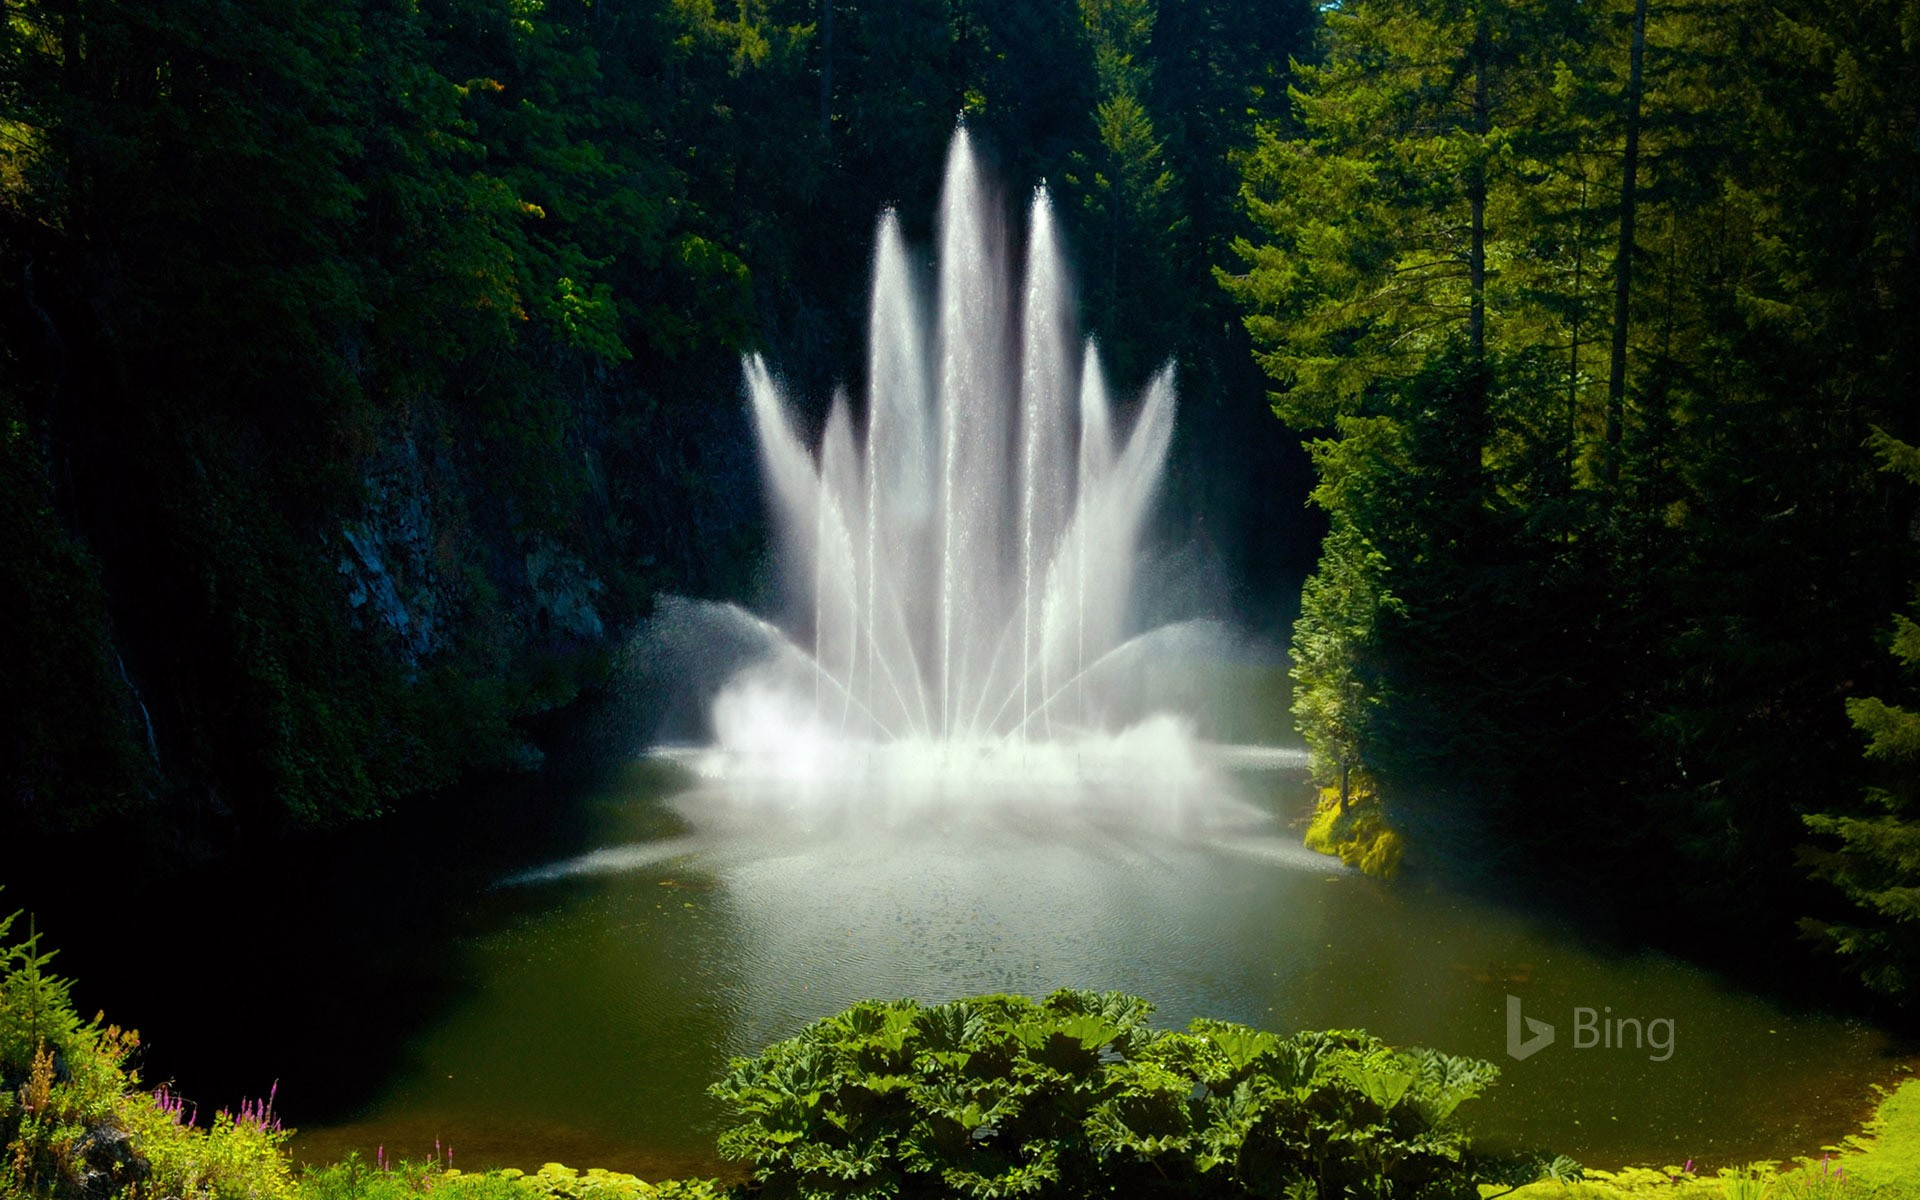 Ross fountain at butchart gardens in victoria british columbia ross fountain at butchart gardens in victoria british columbia canada reimar 8 altavistaventures Choice Image